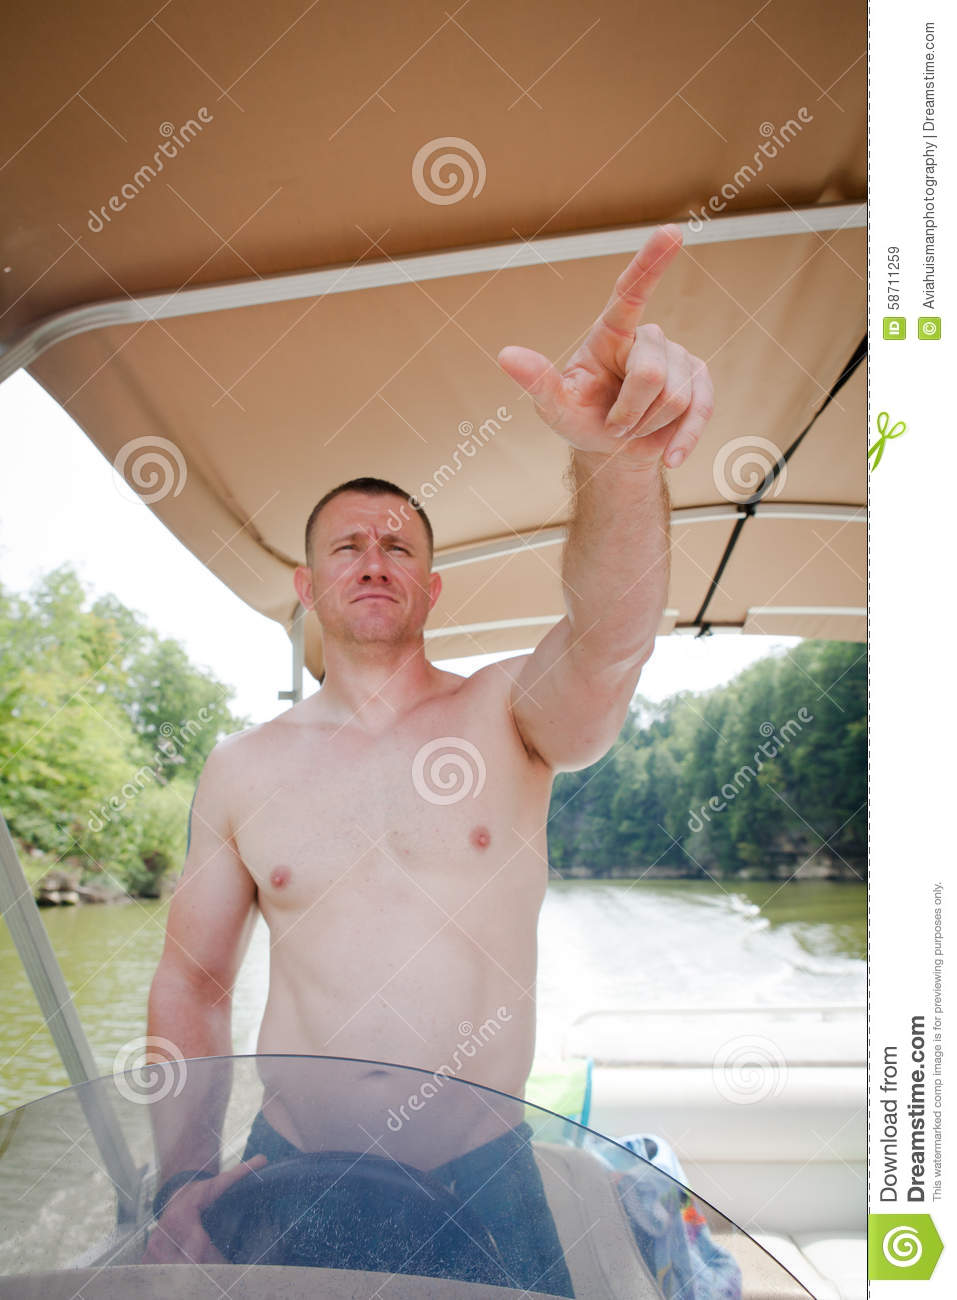 Boater: Man Driving a Boat Pointing